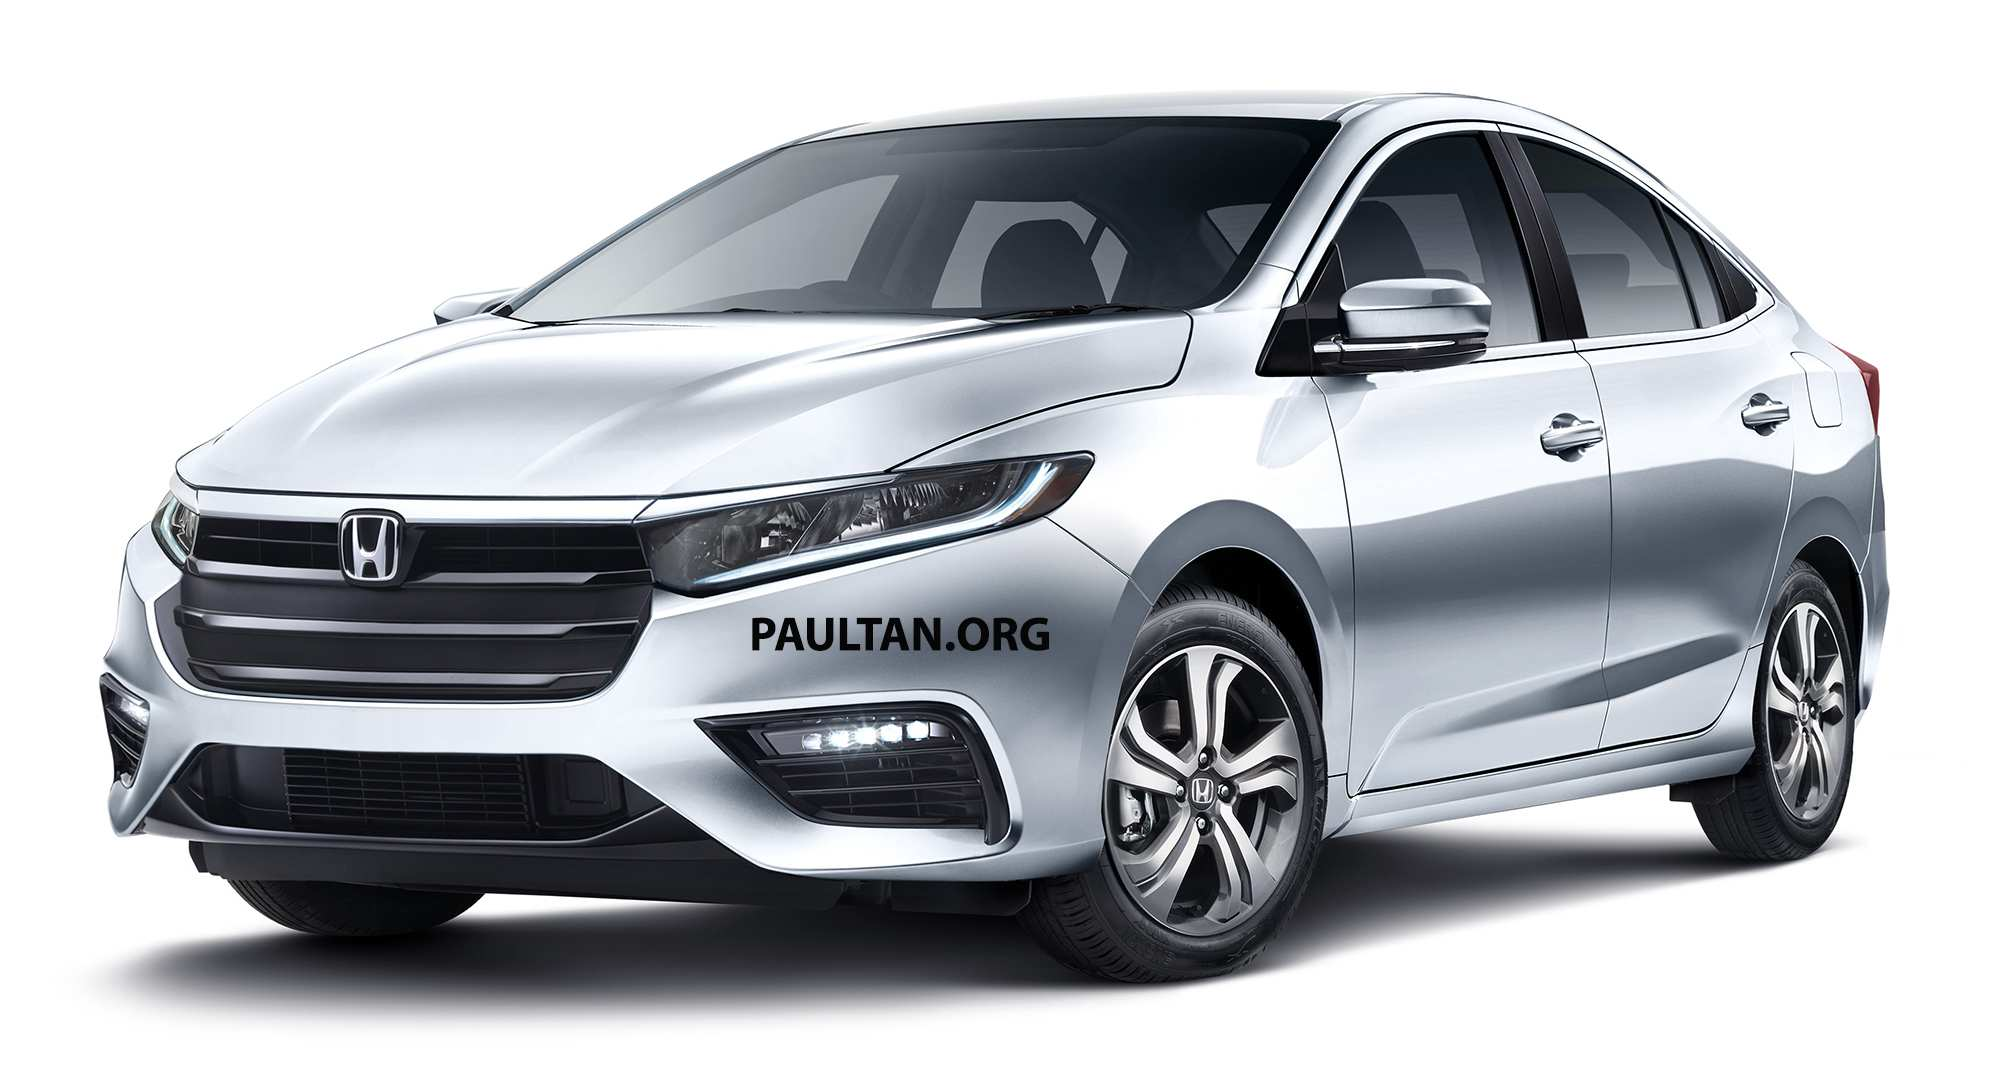 23 New Honda City 2020 Launch Date In Pakistan Exterior And Interior